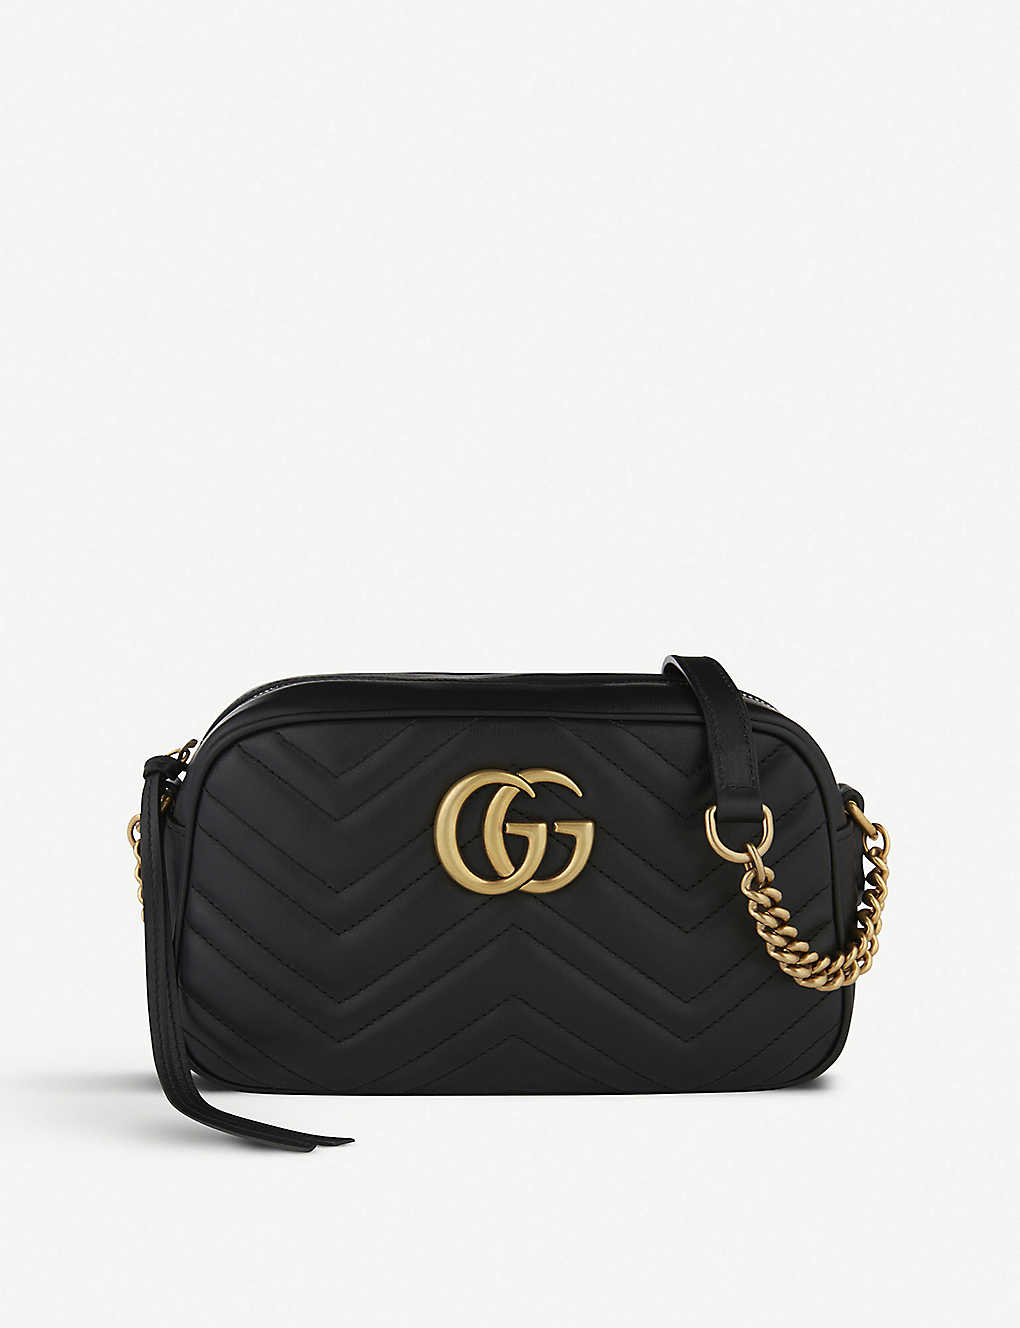 b340c3d34bd9 GUCCI - Marmont matelassé leather shoulder bag | Selfridges.com